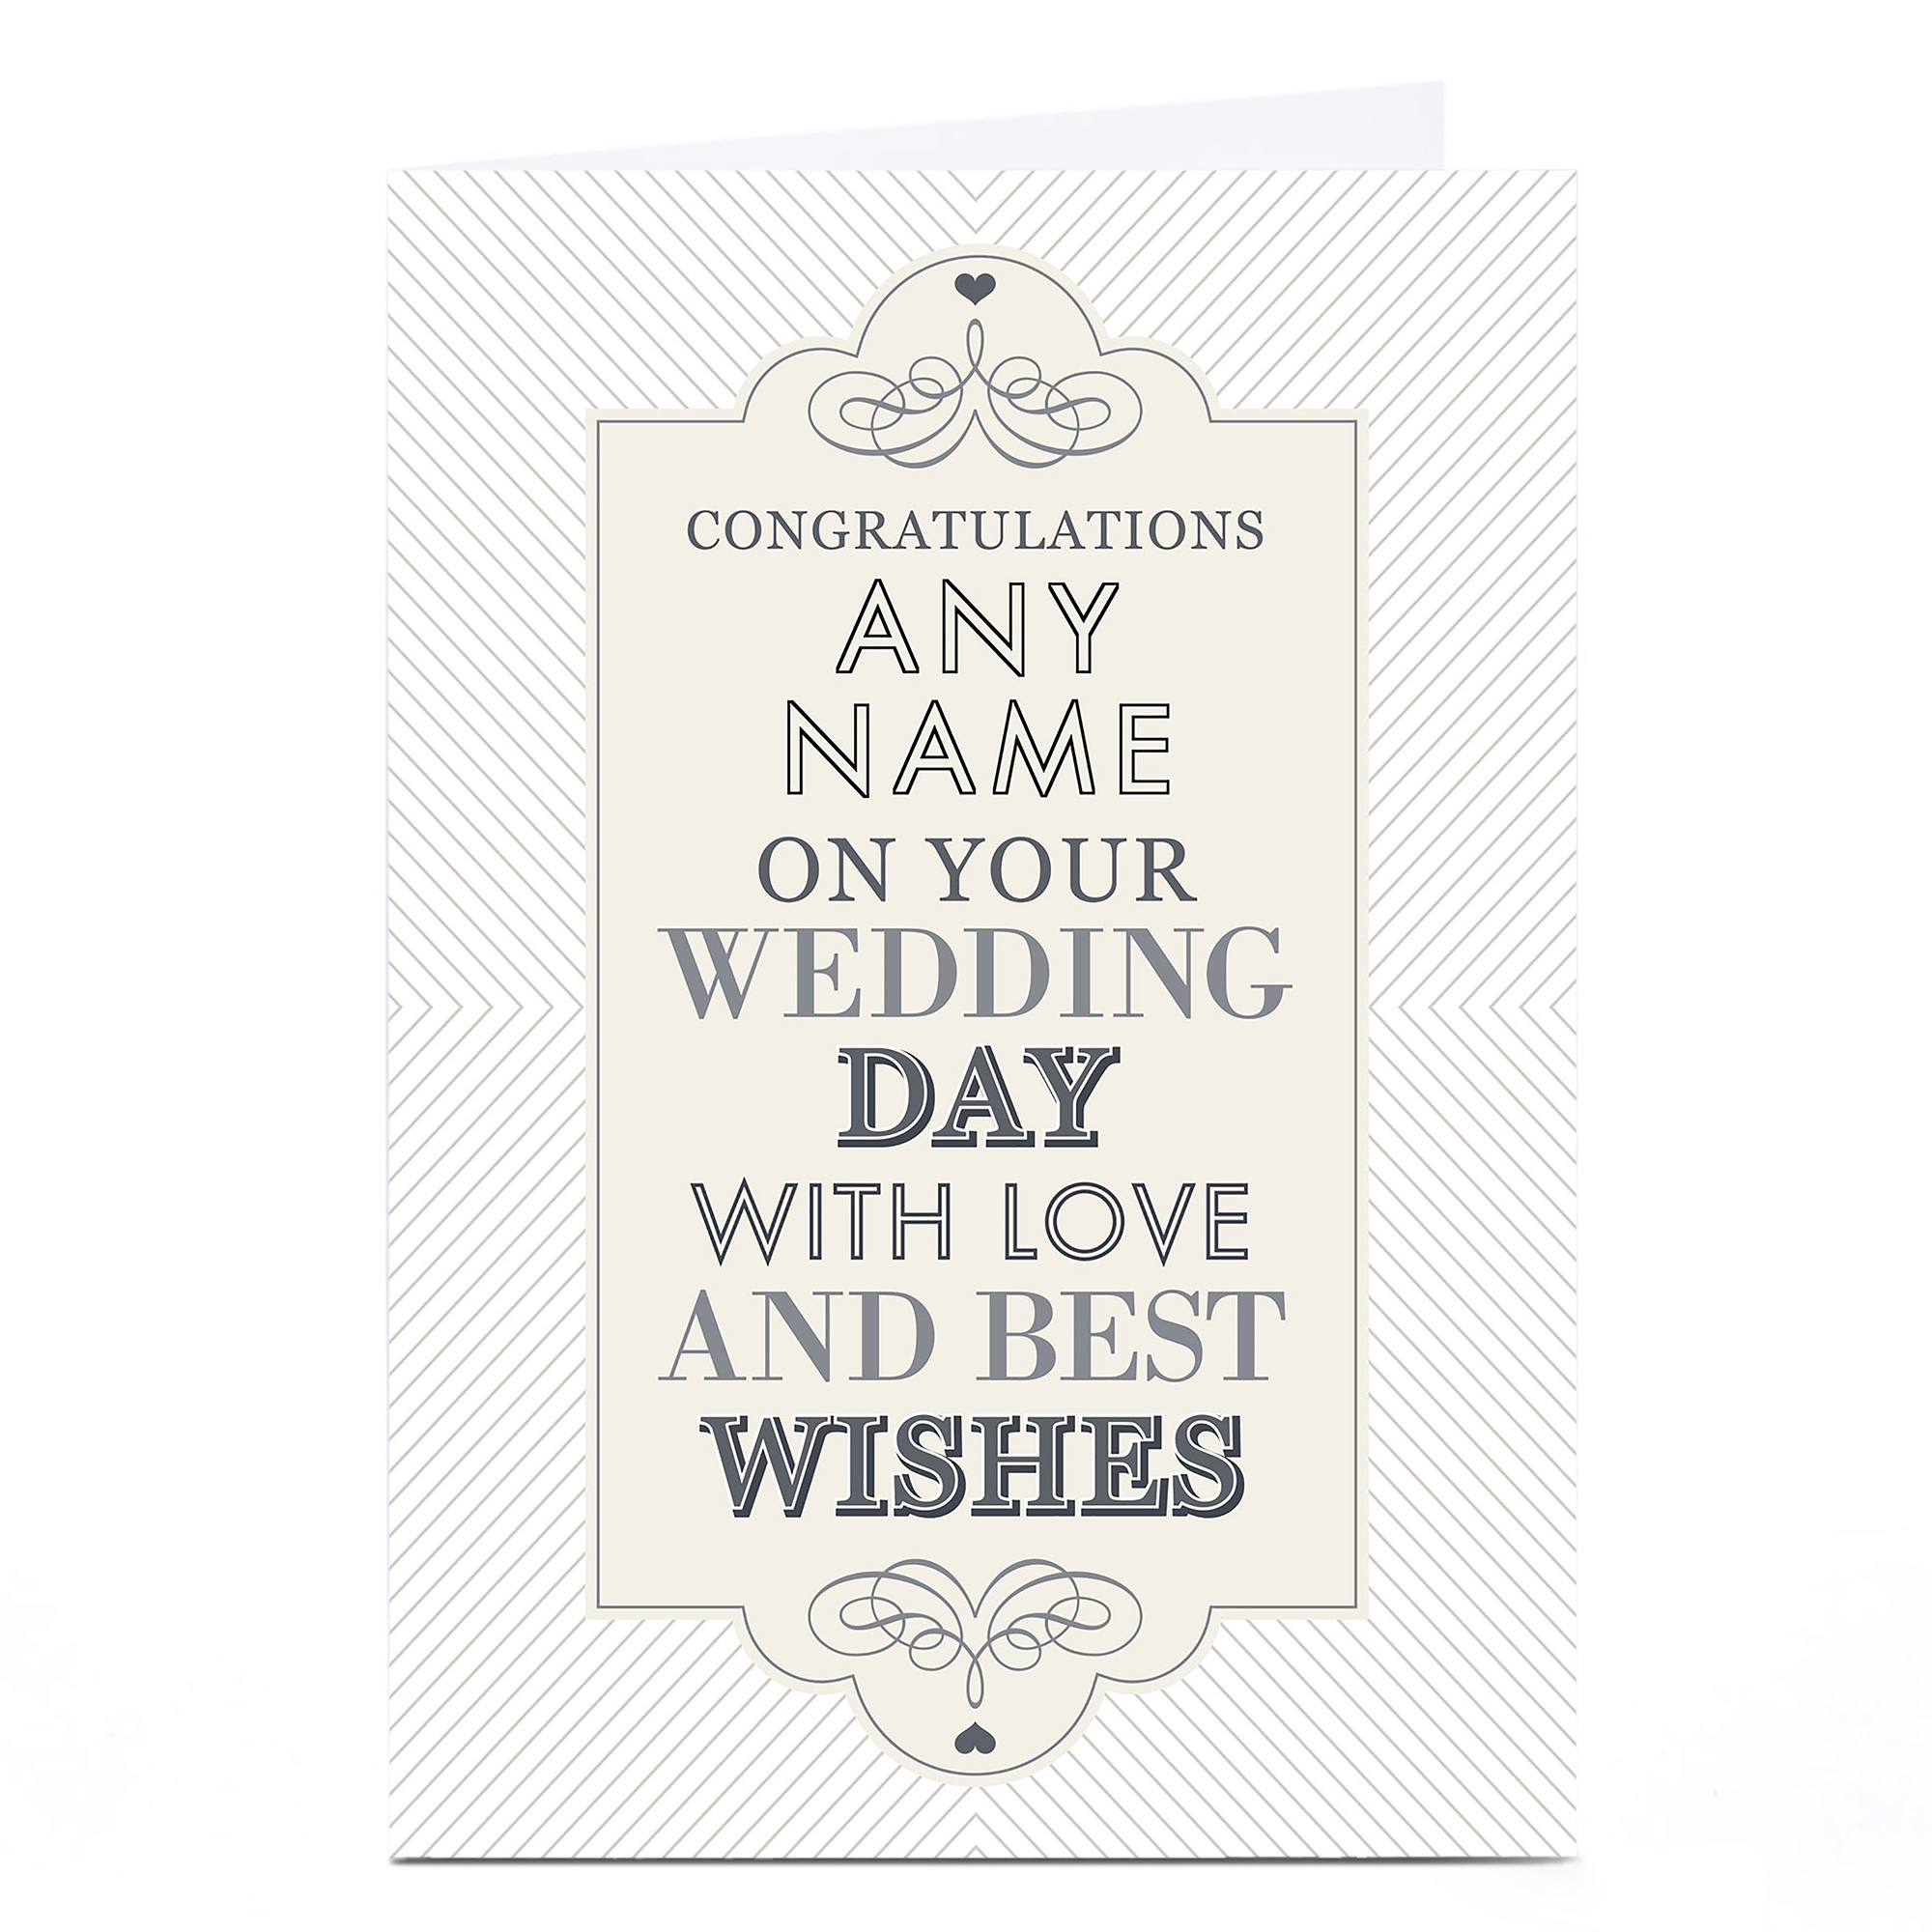 Personalised Wedding Card - With Love & Best Wishes